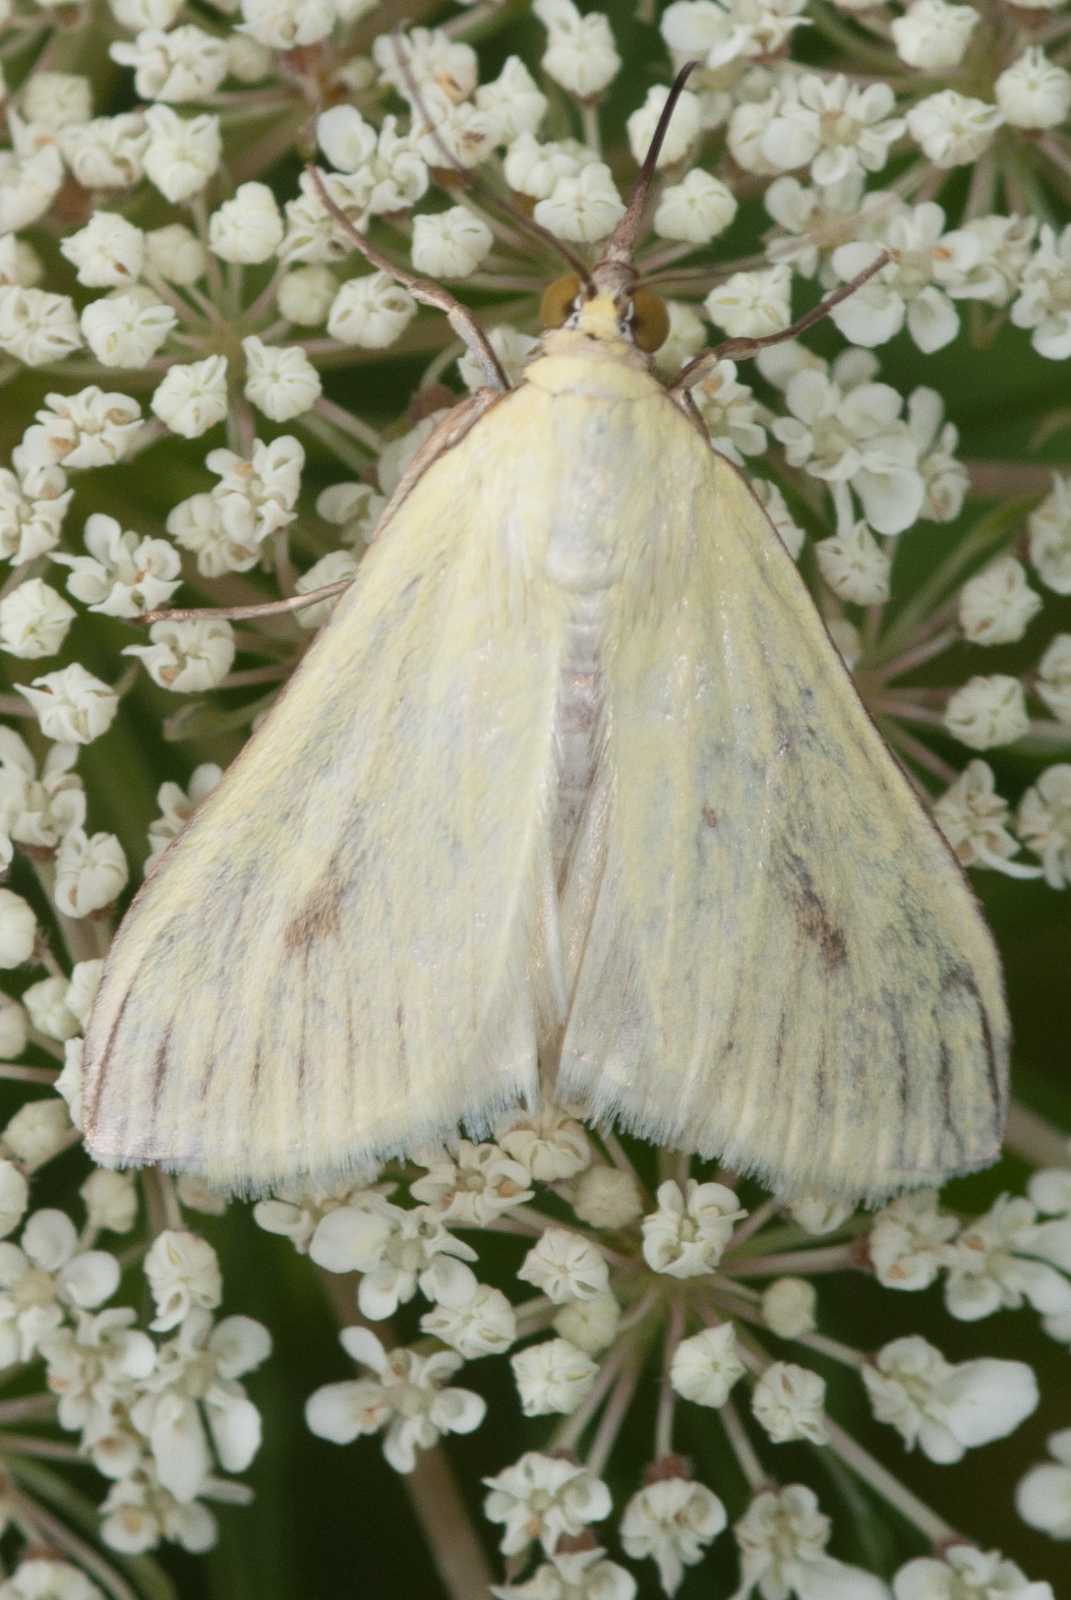 White Moth On Queen Annes Lace Flower